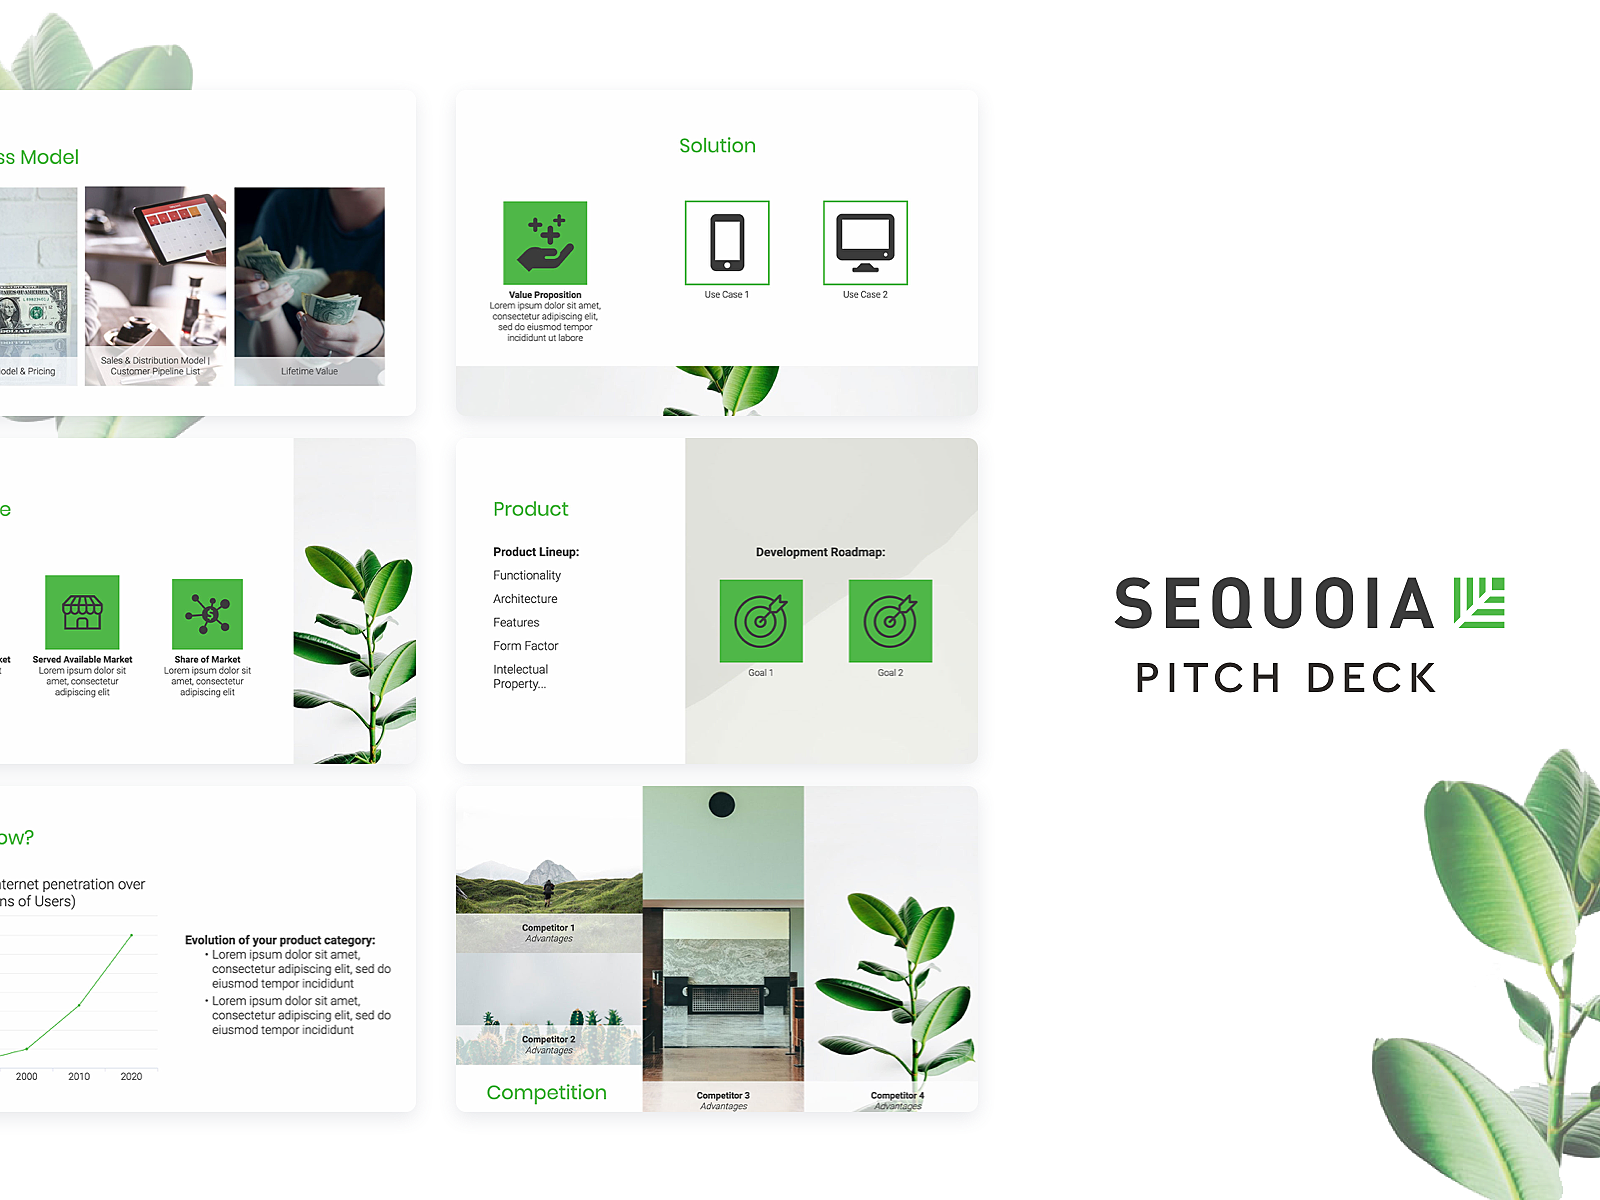 sequoia capital pitch deck template by slidebean on dribbble. Black Bedroom Furniture Sets. Home Design Ideas